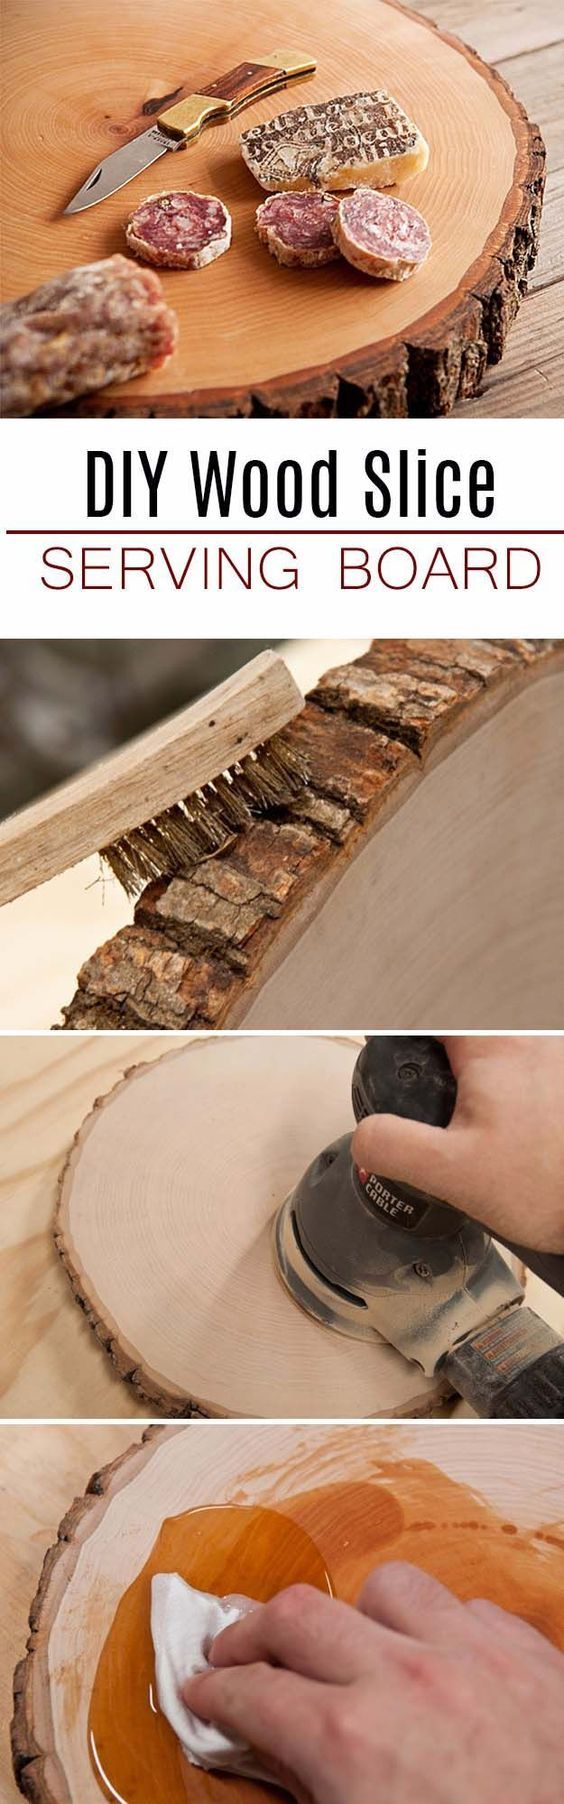 20 Amazing Diy Decoration Wood Slice